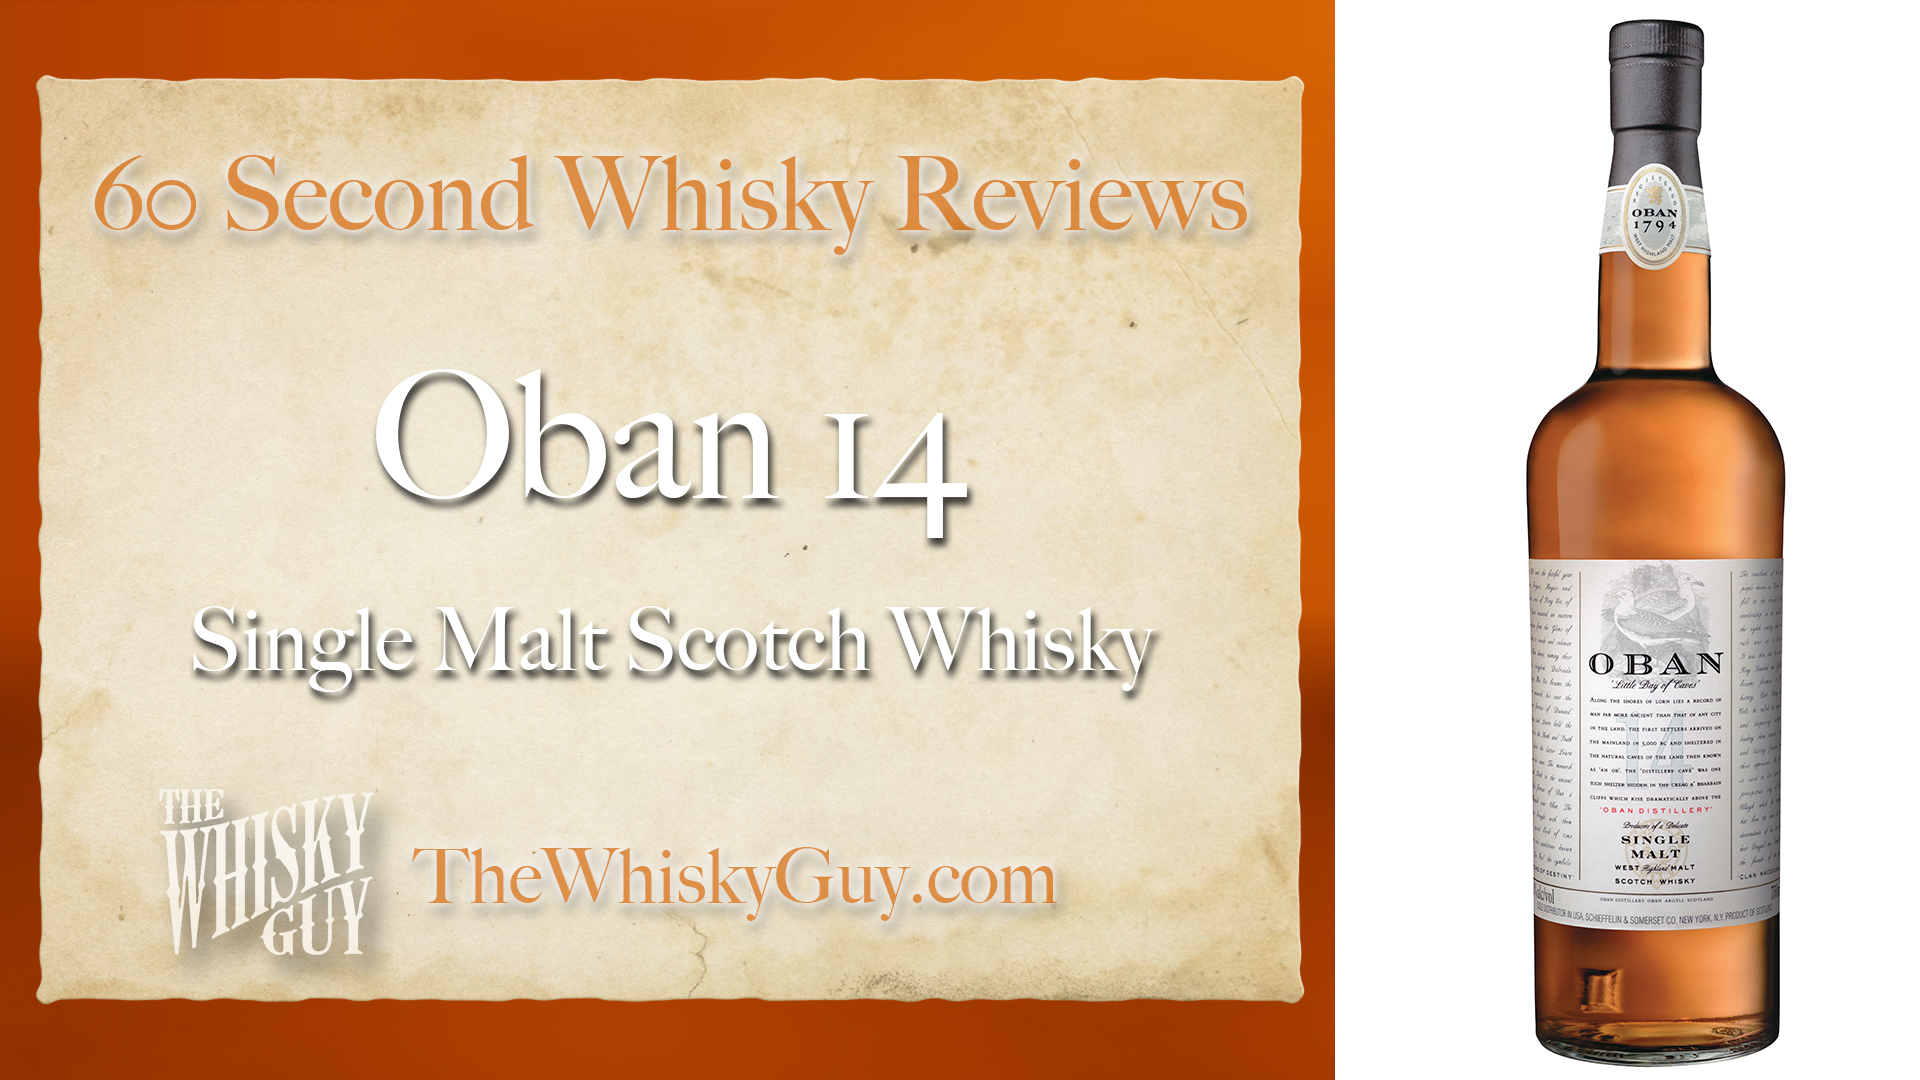 Does Oban 14 Single Malt Scotch Whisky belong in your liquor cabinet? Is it worth the price at the bar? Give The Whisky Guy 60 seconds and find out! In just 60 seconds, The Whisky Guy reviews Irish Whiskey, Scotch Whisky, Single Malt, Canadian Whisky, Bourbon Whiskey, Japanese Whisky and other whiskies from around the world. Find more at TheWhiskyGuy.com. All original content © Ari Shapiro - TheWhiskyGuy.com